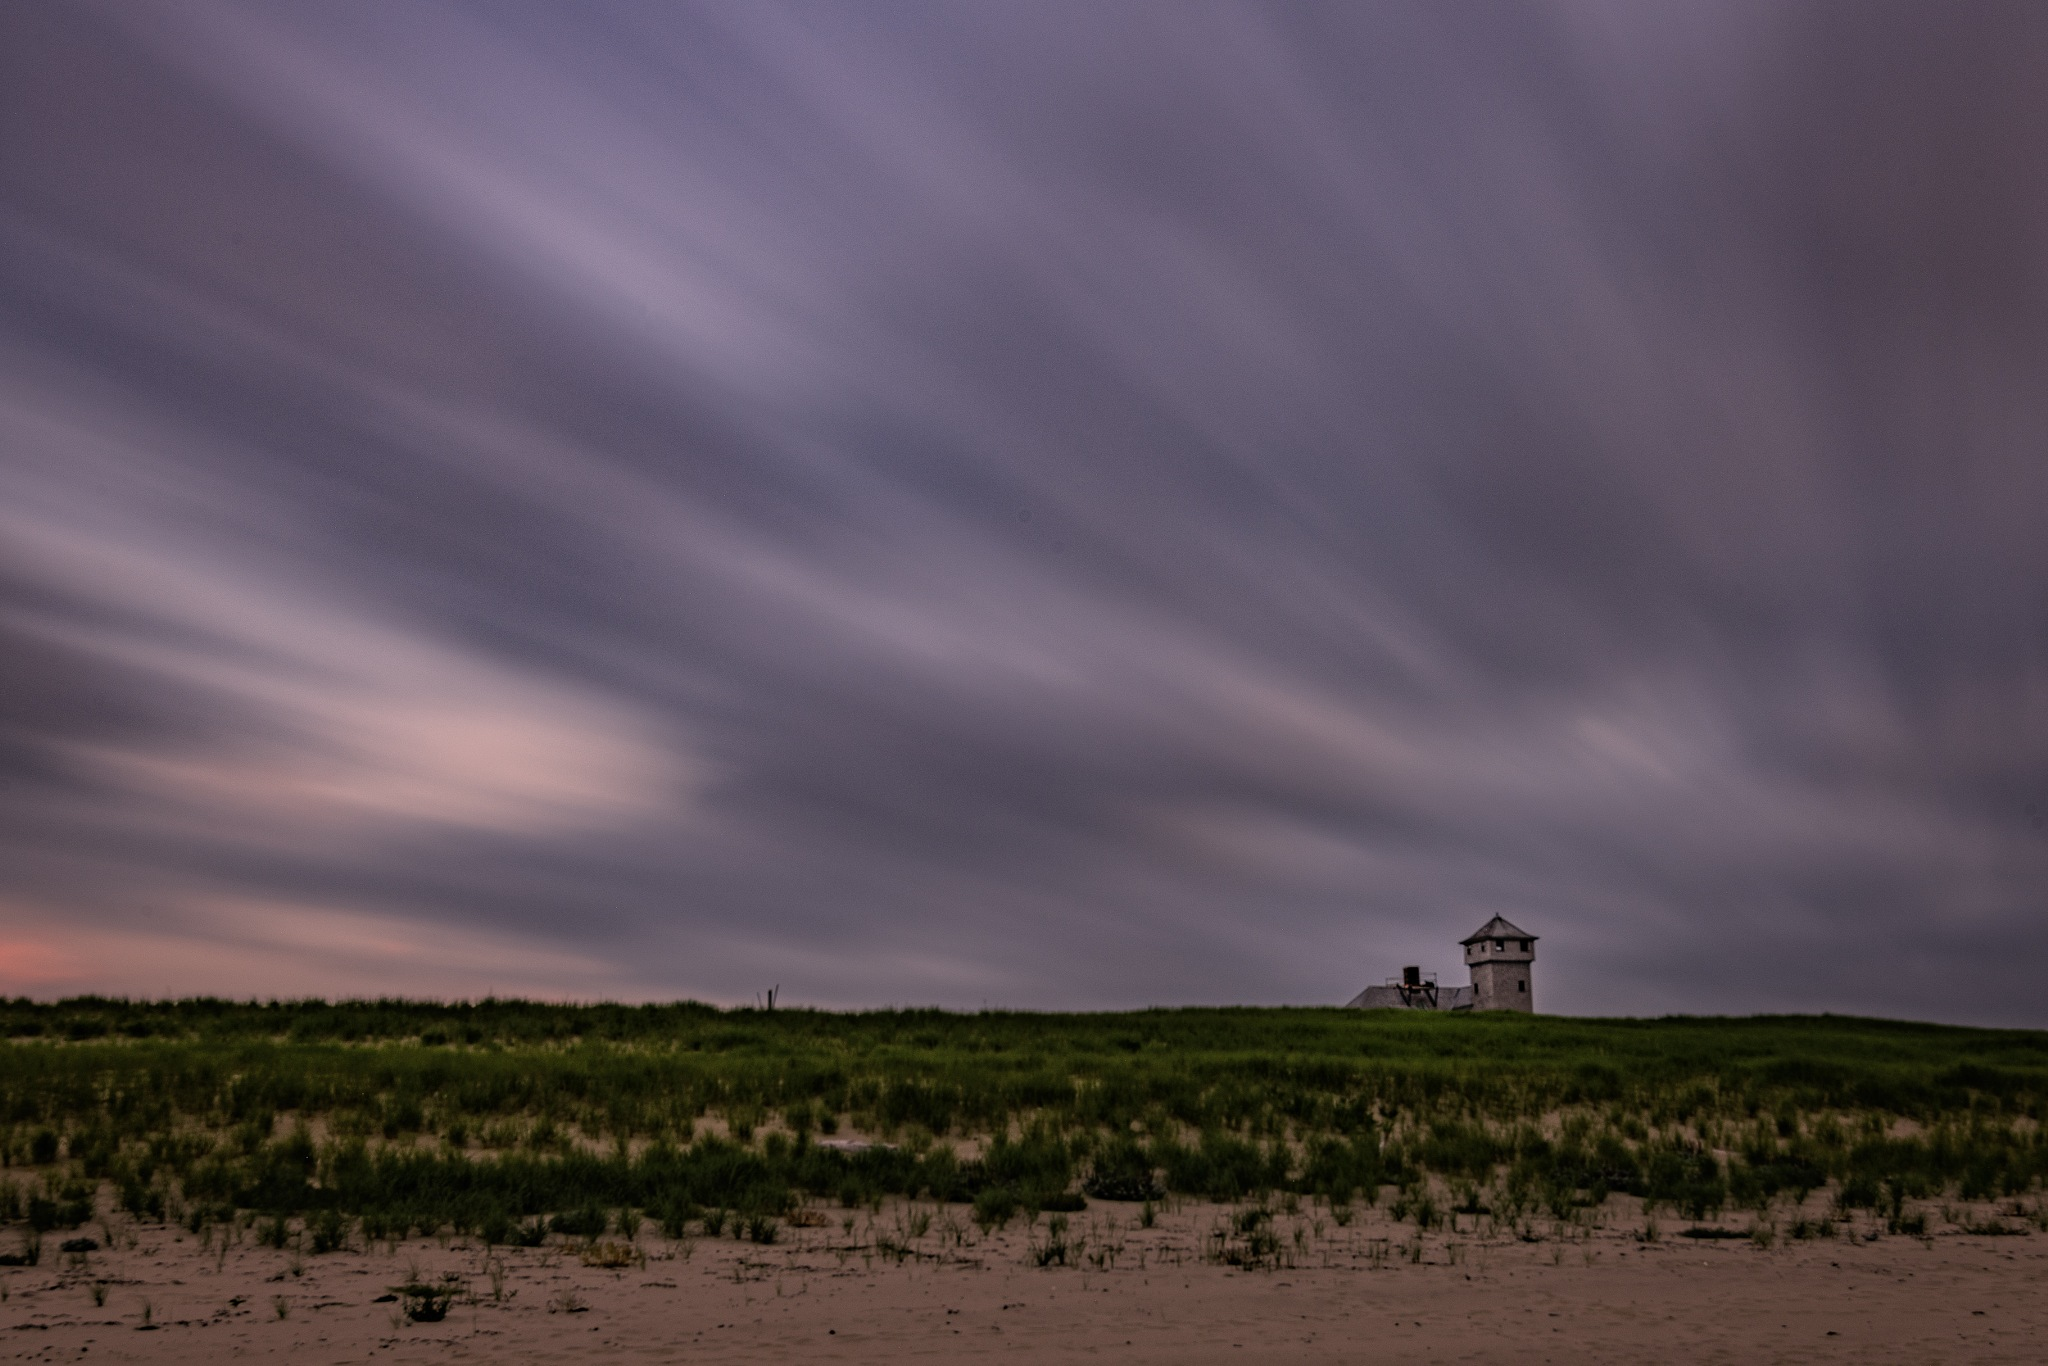 Evening at Race Point by Steve Director